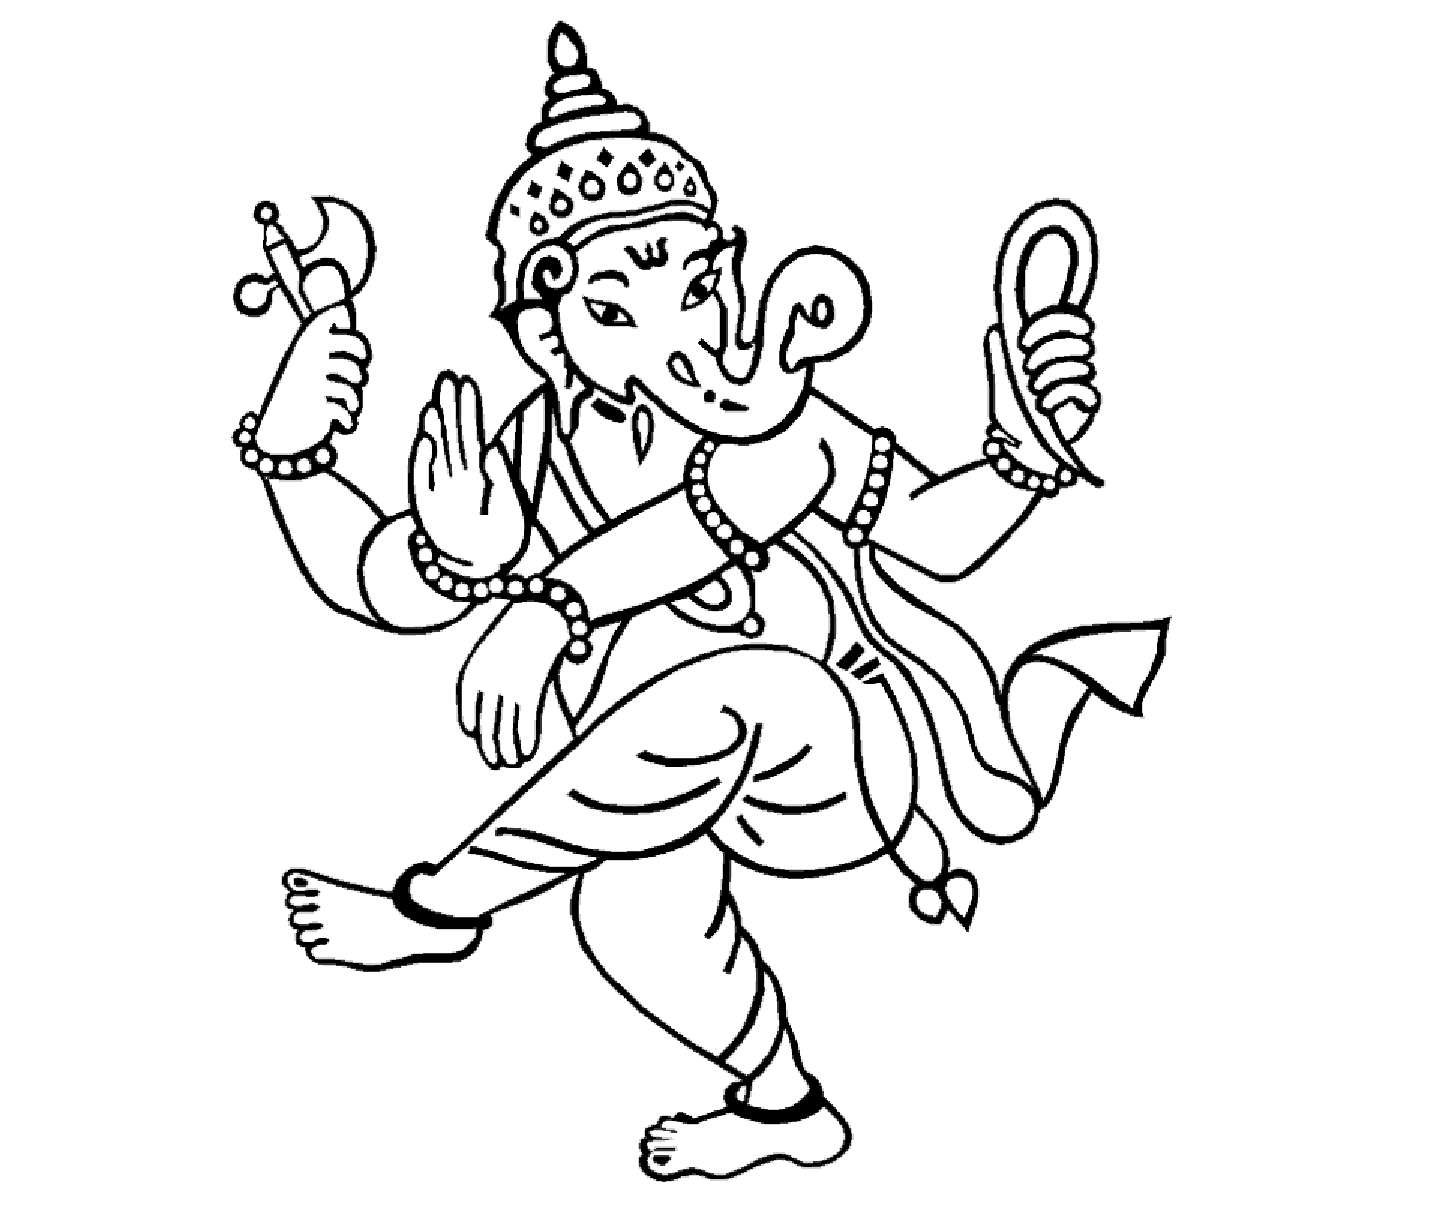 Colour Drawing Free Hd Wallpapers Lord Ganesha Coloring Page Free Wallpaper